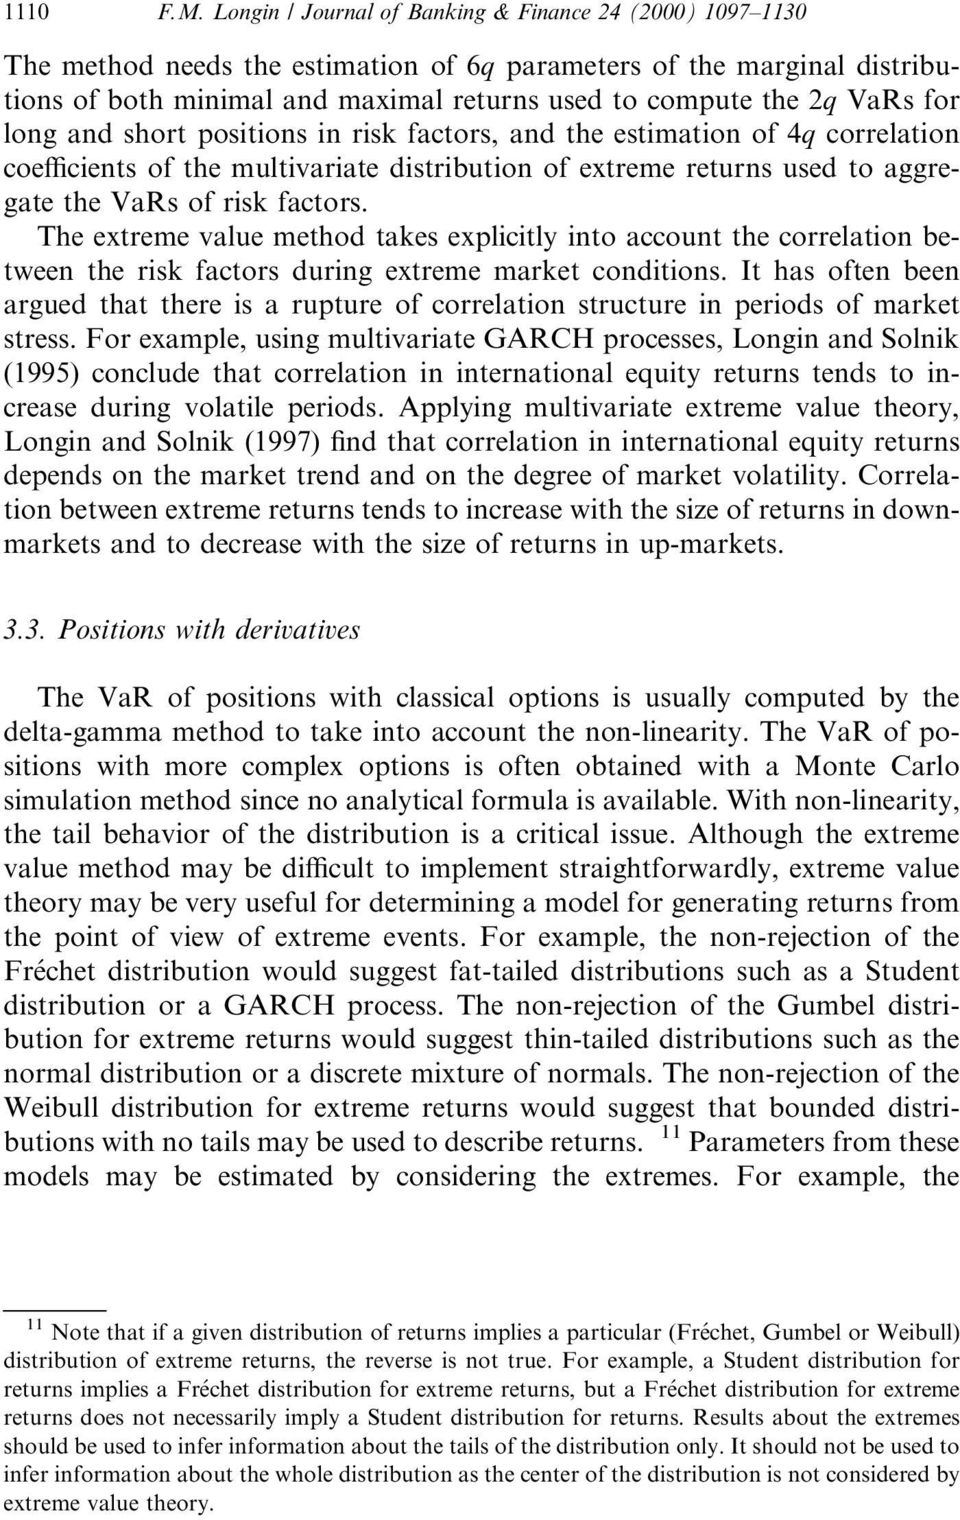 VaRs for long and short positions in risk factors, and the estimation of 4q correlation coe cients of the multivariate distribution of extreme returns used to aggregate the VaRs of risk factors.